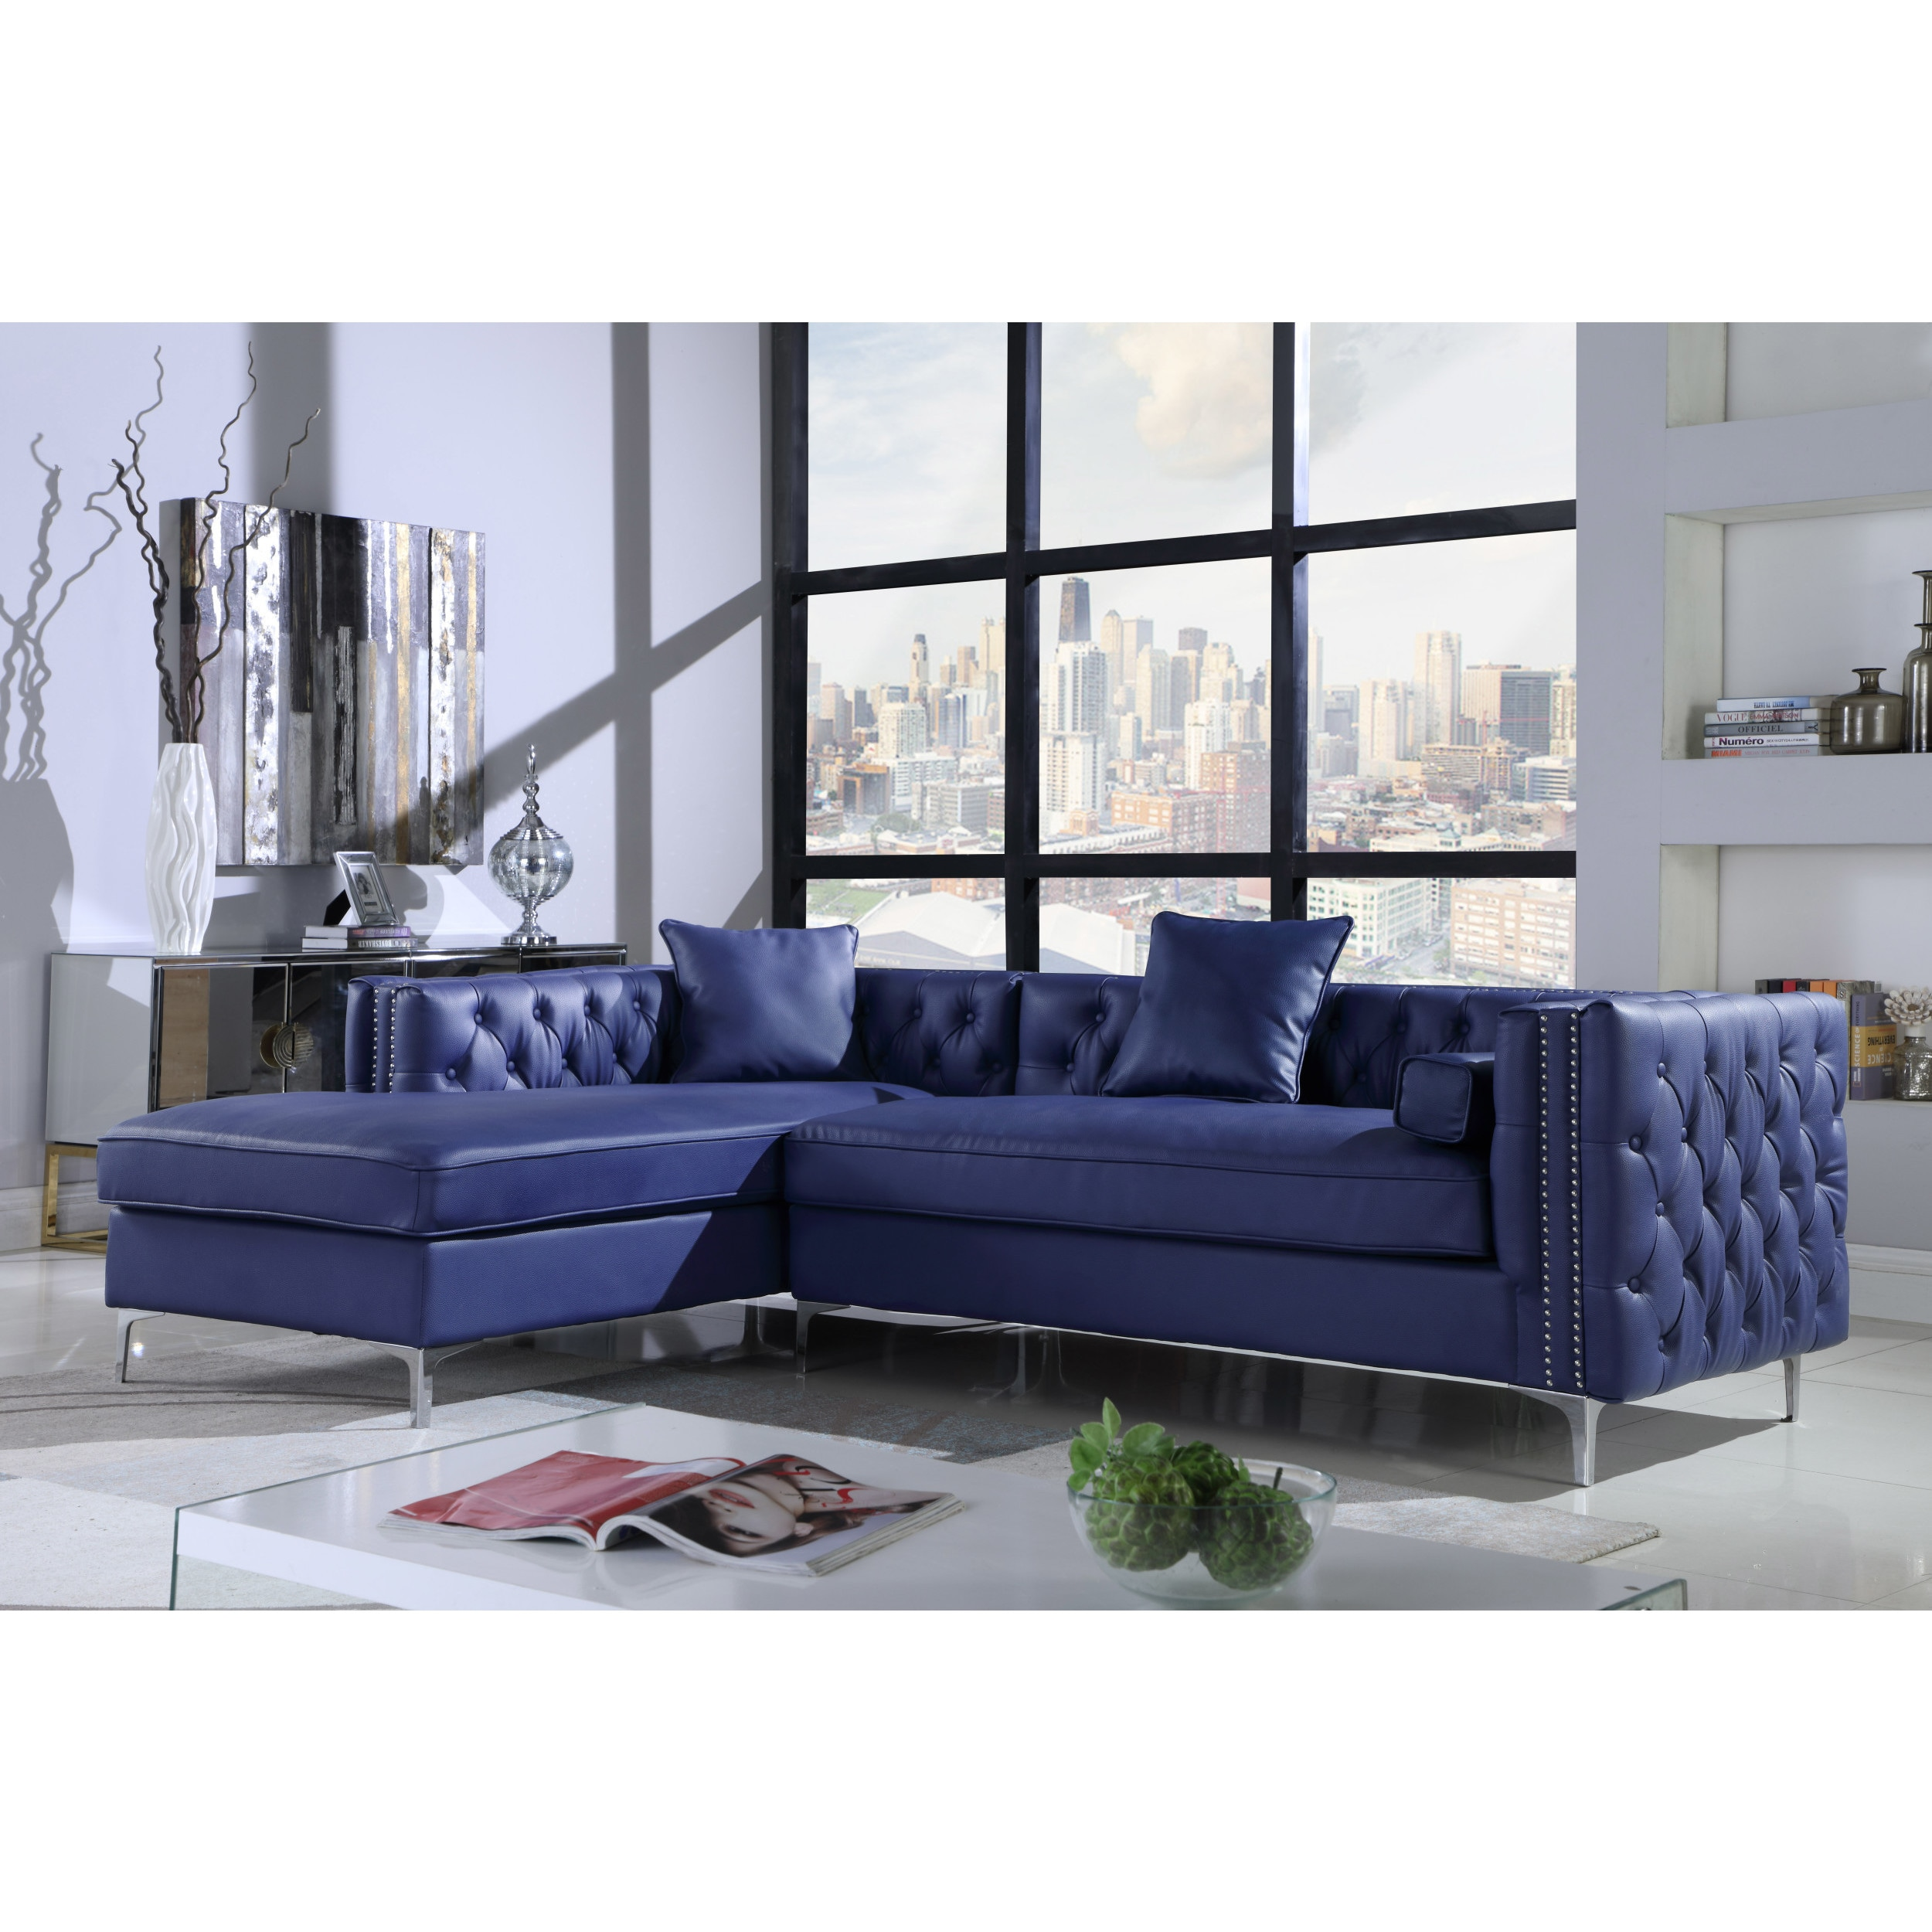 Chic home monet pu leather modern contemporary button tufted with silver nailhead trim left facing sectional sofa